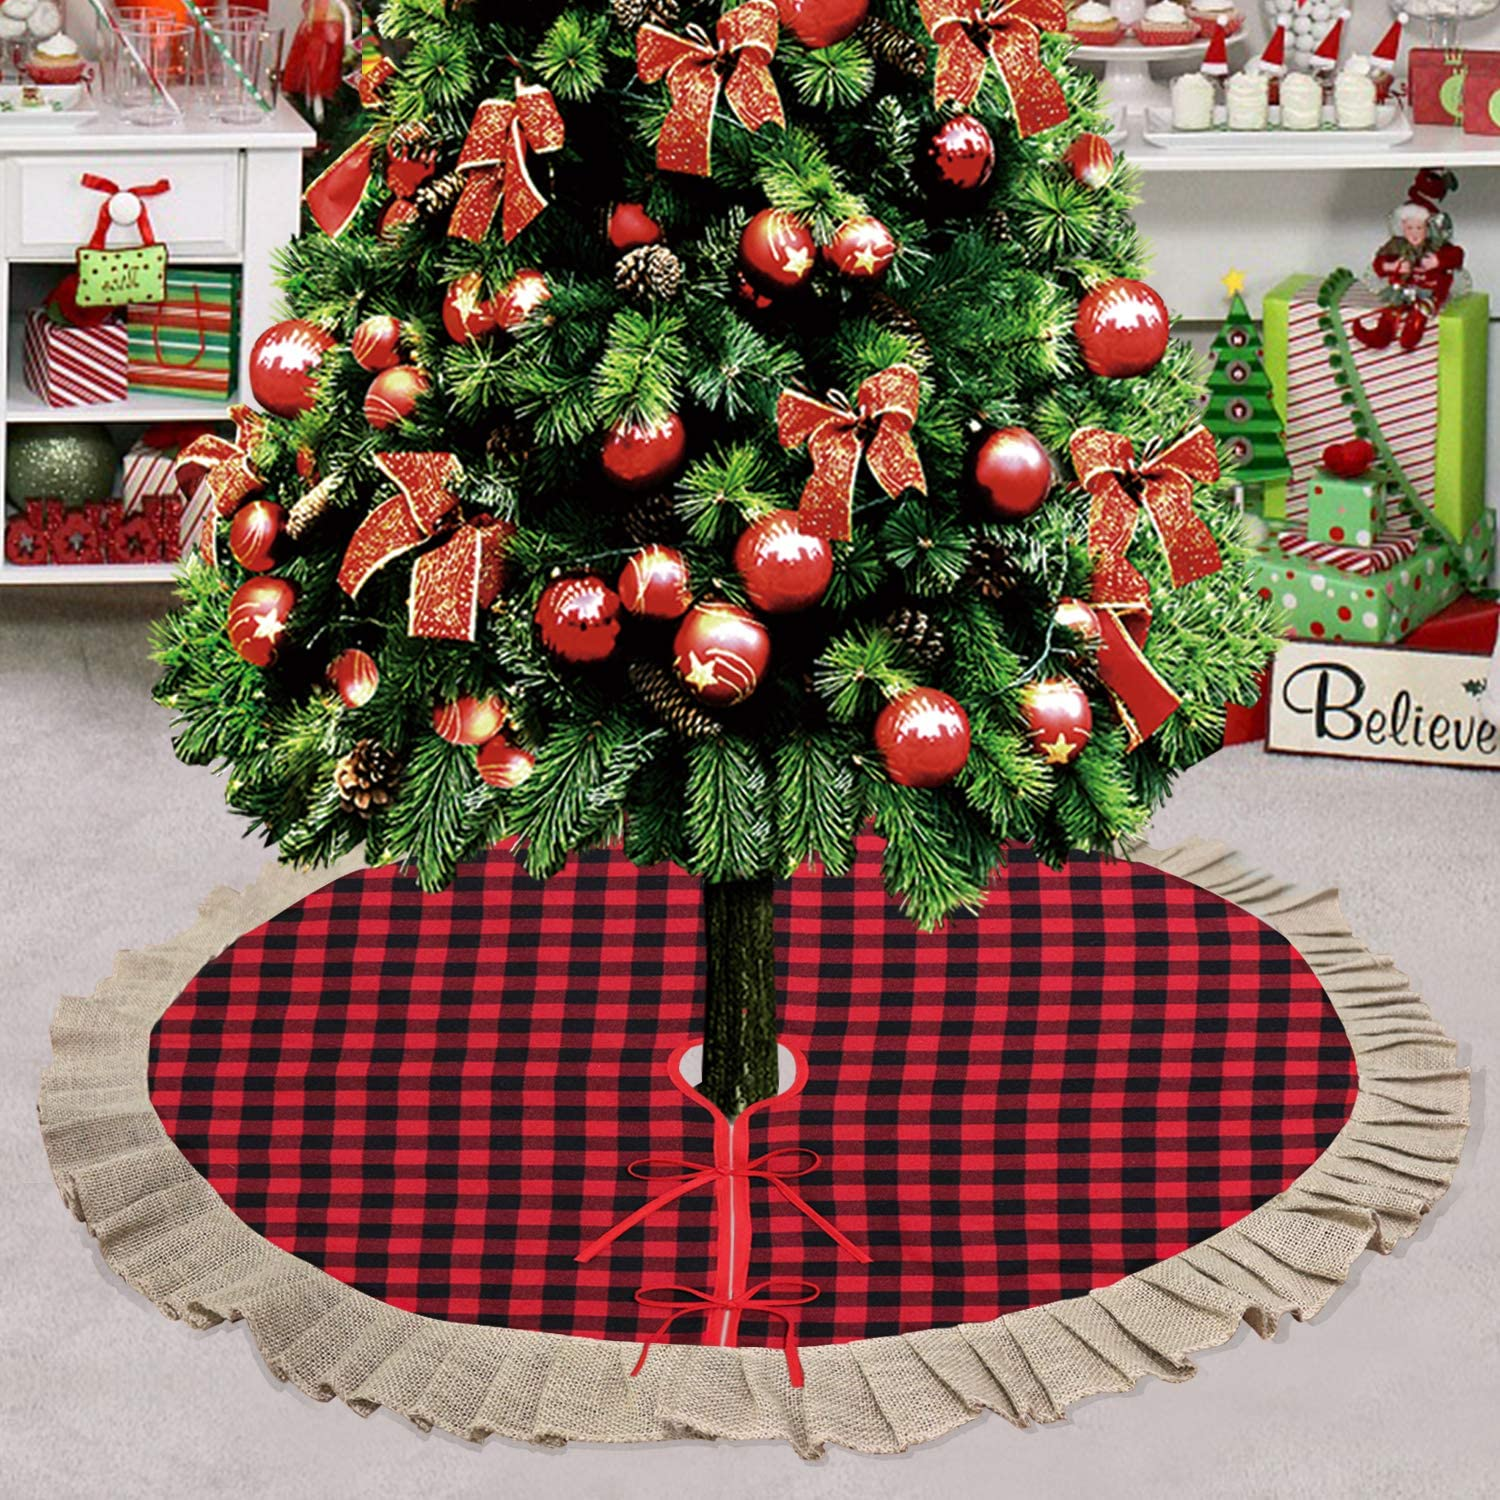 Partyprops Christmas Tree Skirt, Large 48 Inch Red Black Buffalo Plaid Tree Skirt, Burlap Ruffle Double Layers Tree Skirt for Christmas Decorations, Xmas Holiday Decorations Indoor Outdoor